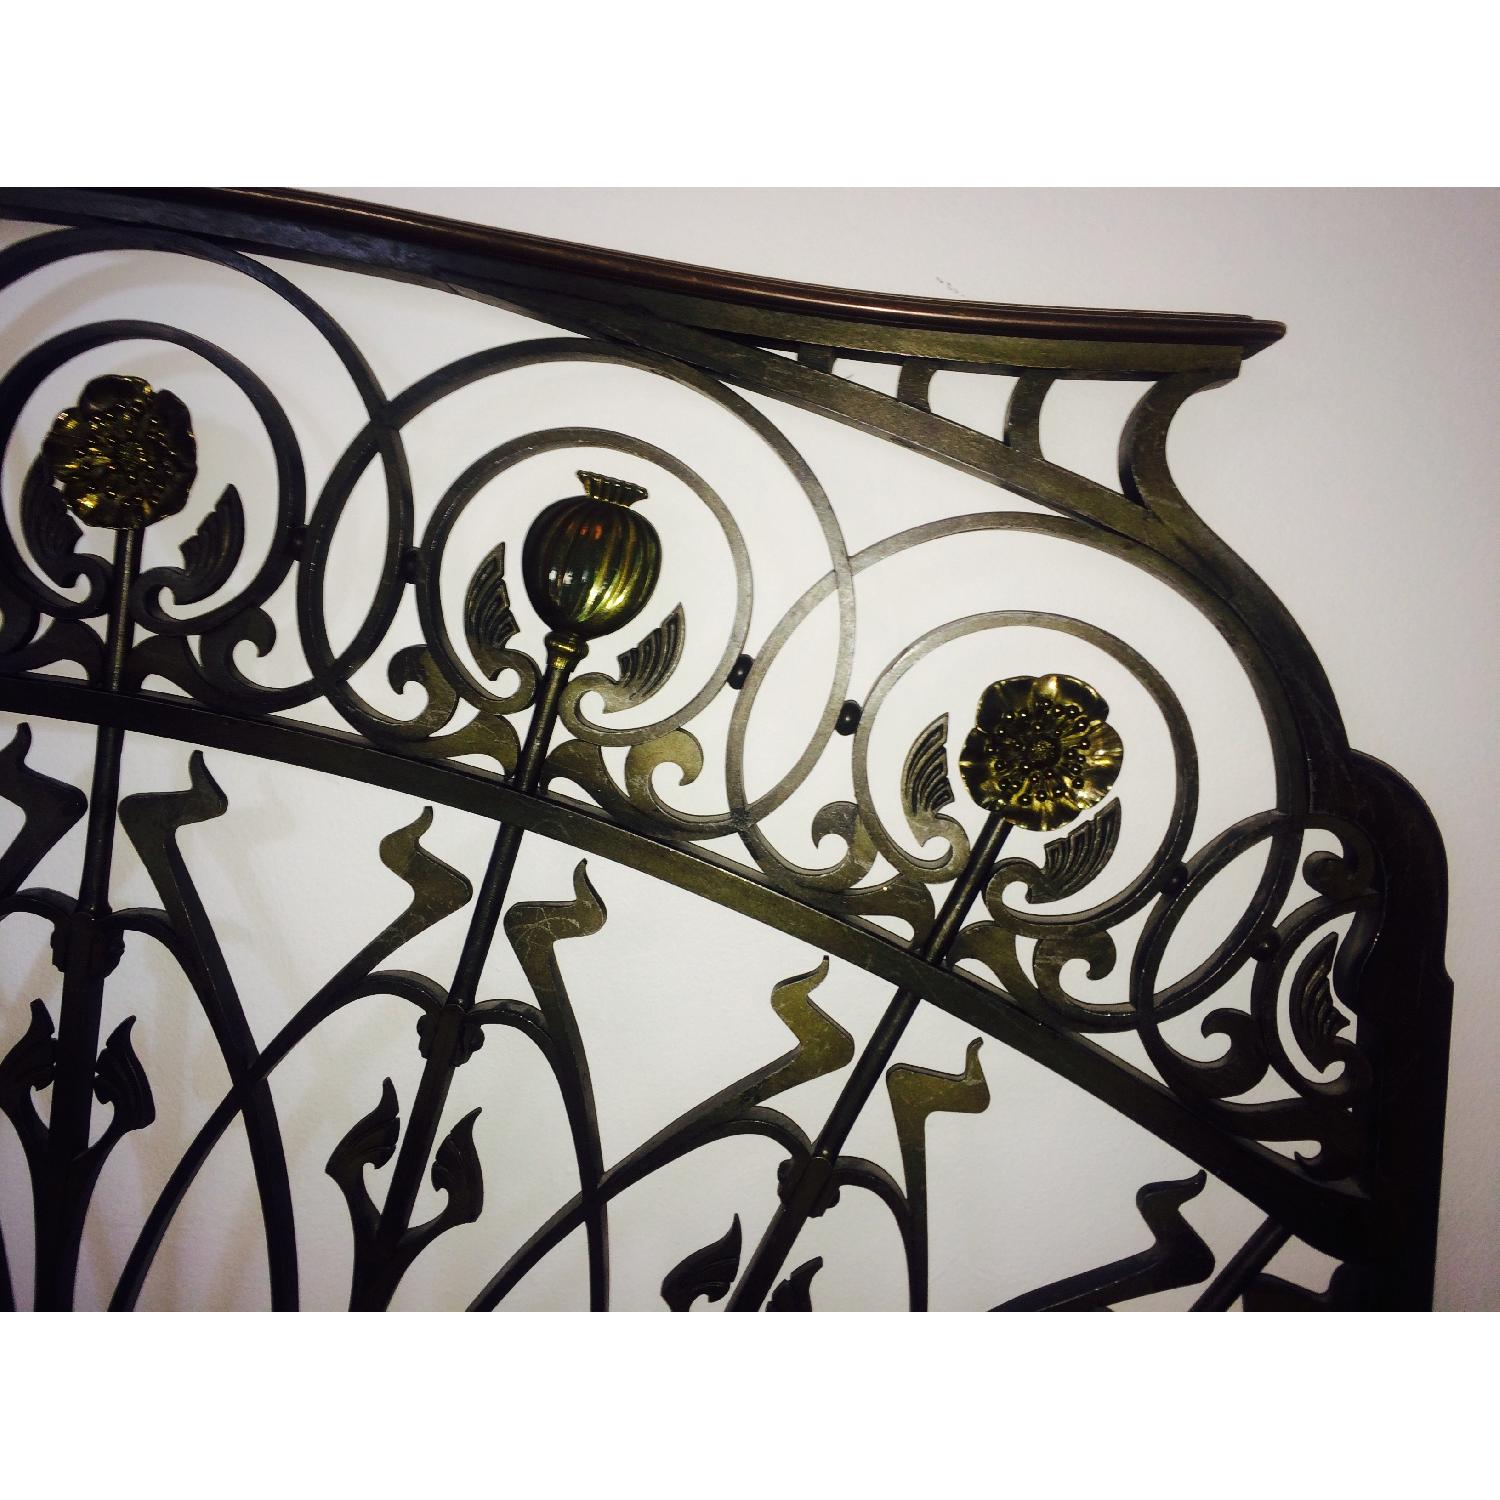 Early 20th-Century French Art Nouveau Wrought Iron and Gilt Bronze Headboard - image-5